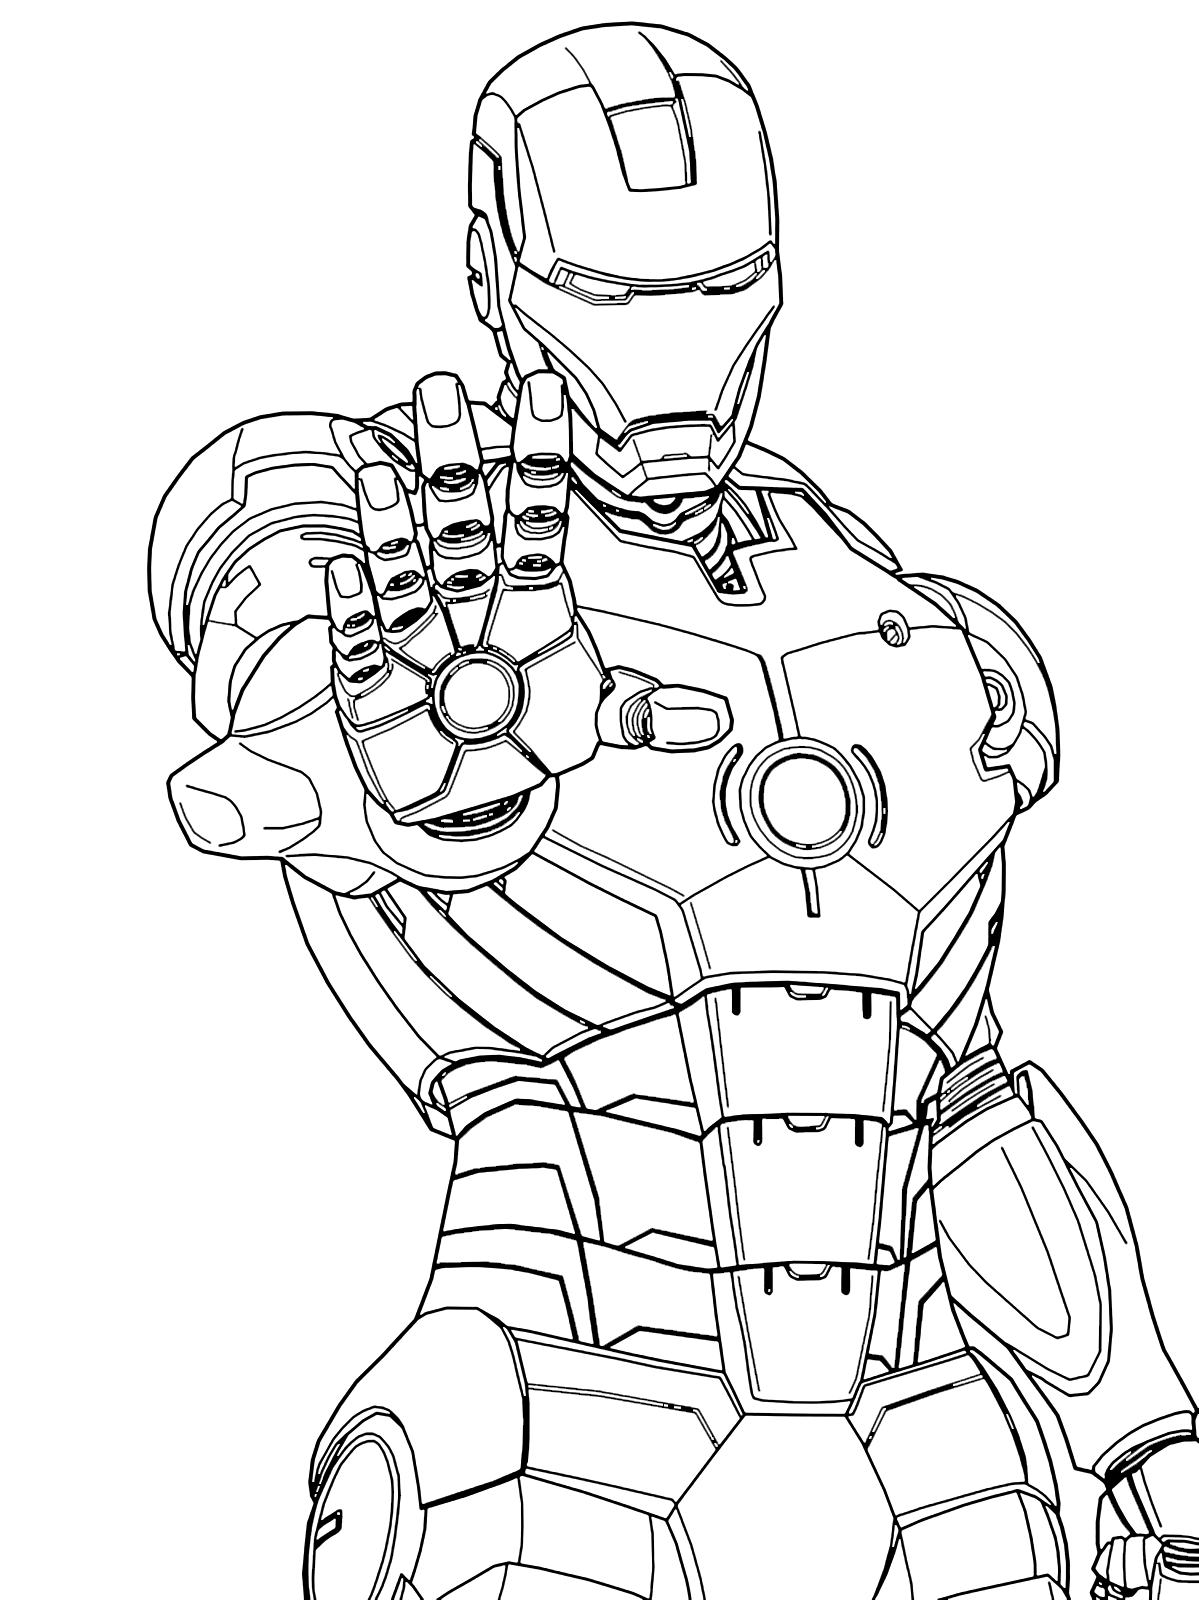 iron man printable images top 20 free printable iron man coloring pages online printable man images iron